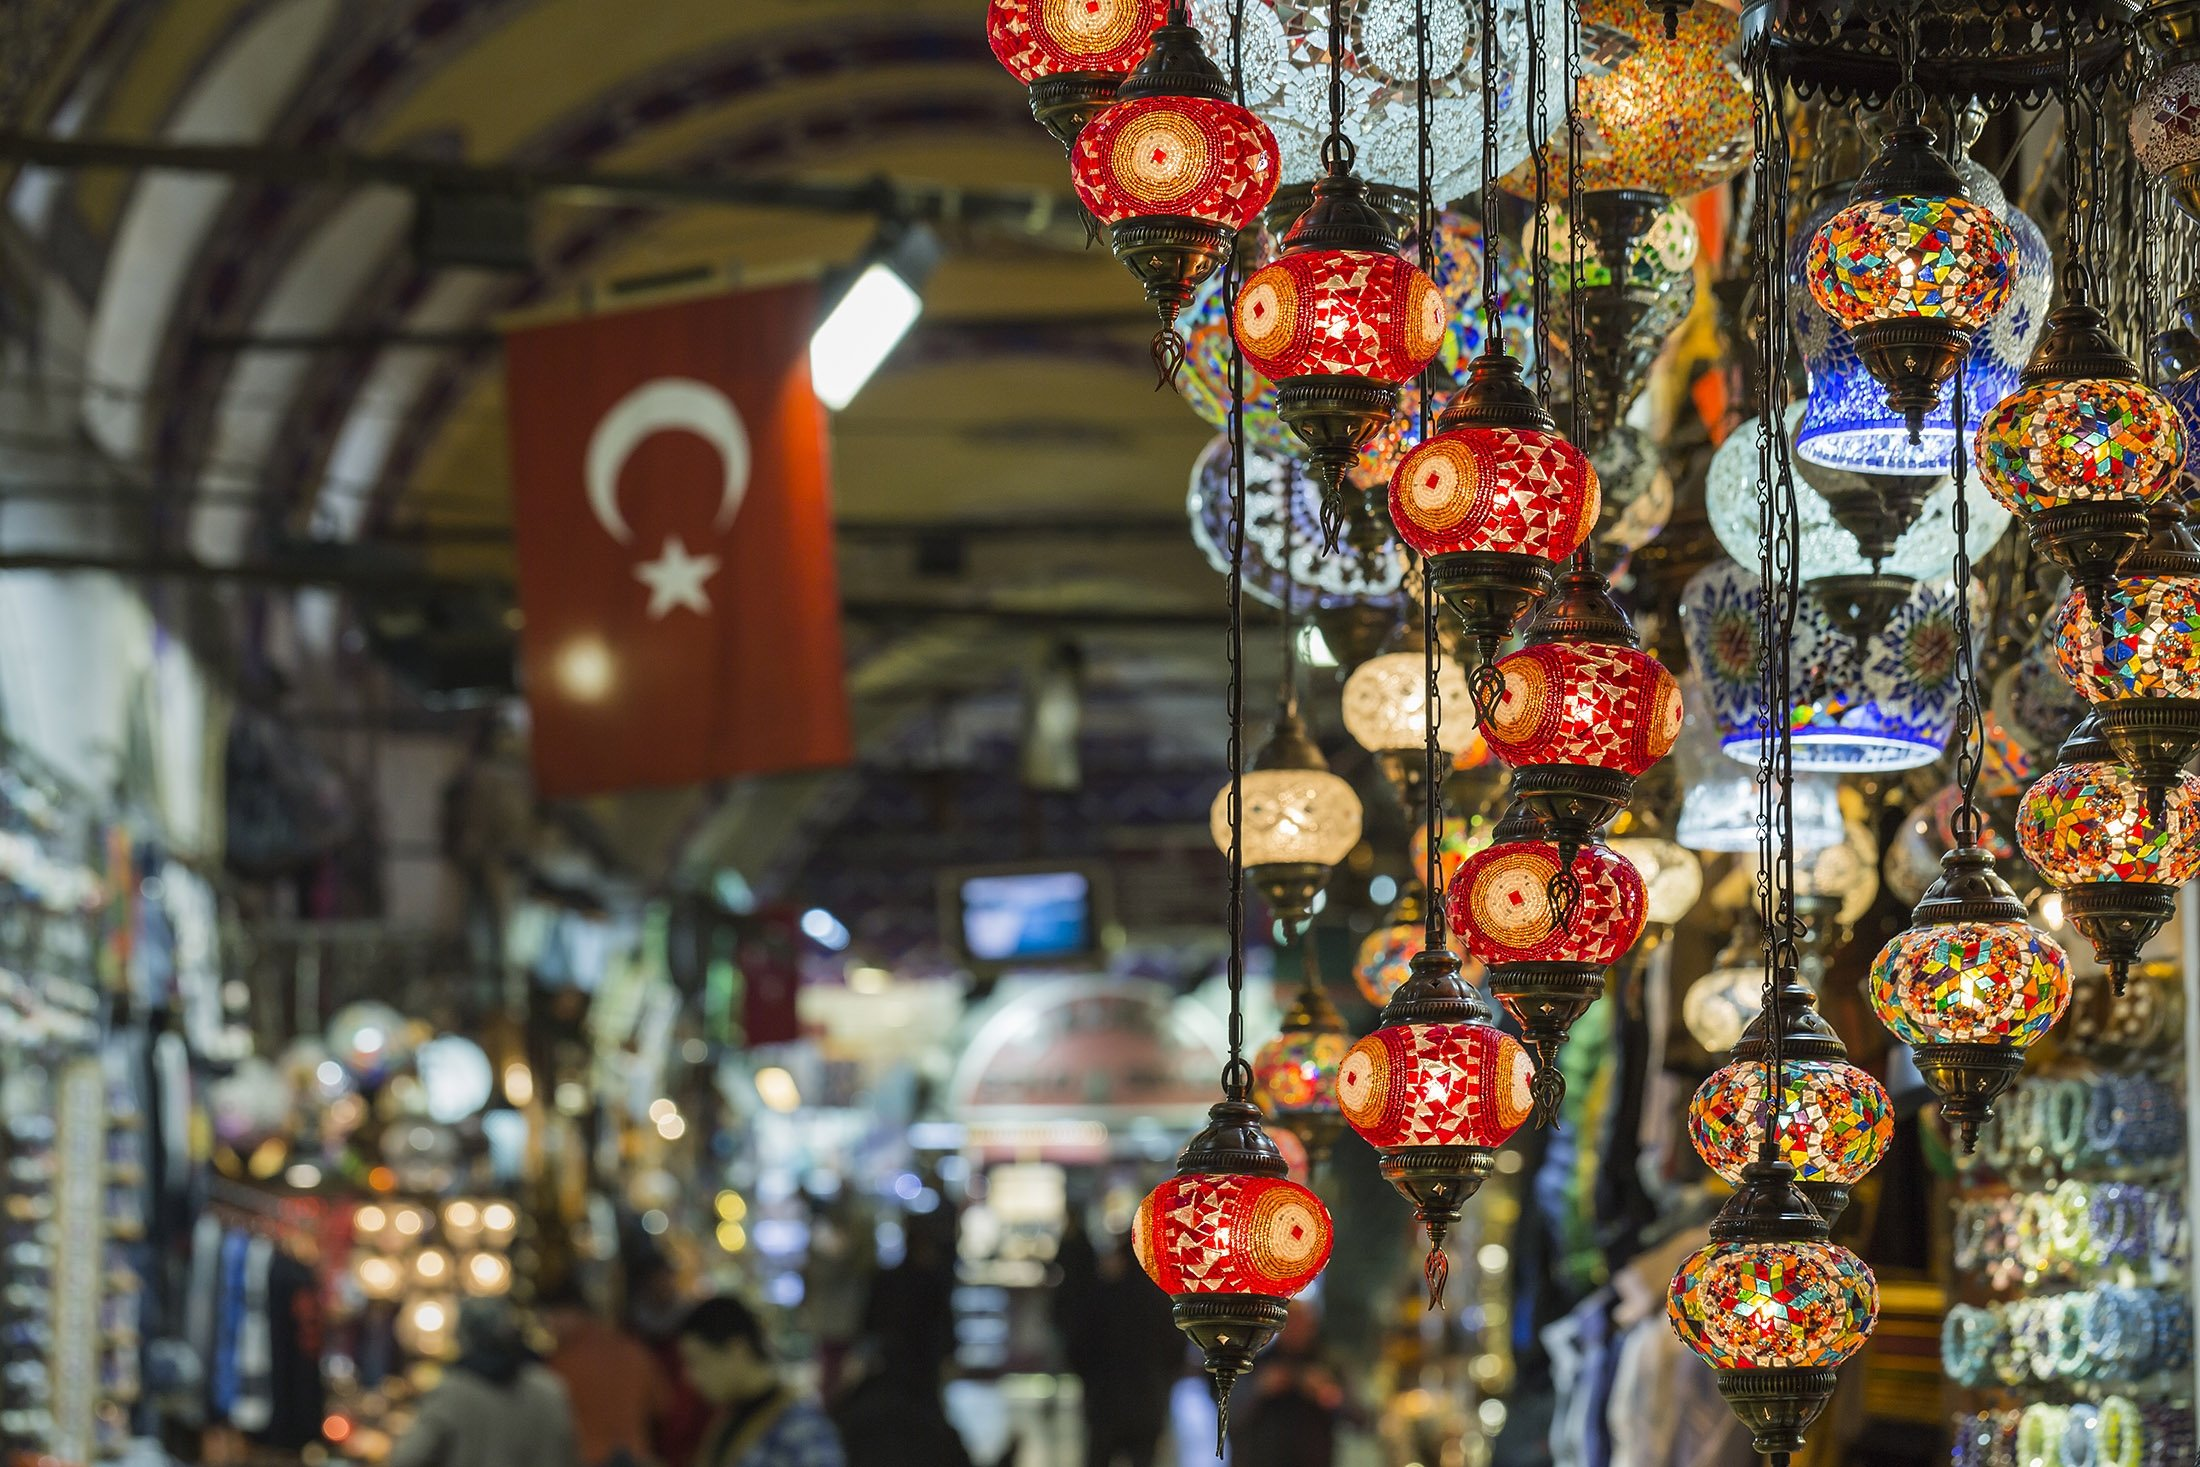 Glass lamps for sale in the Grand Bazaar in Istanbul. (Shutterstock Photo)